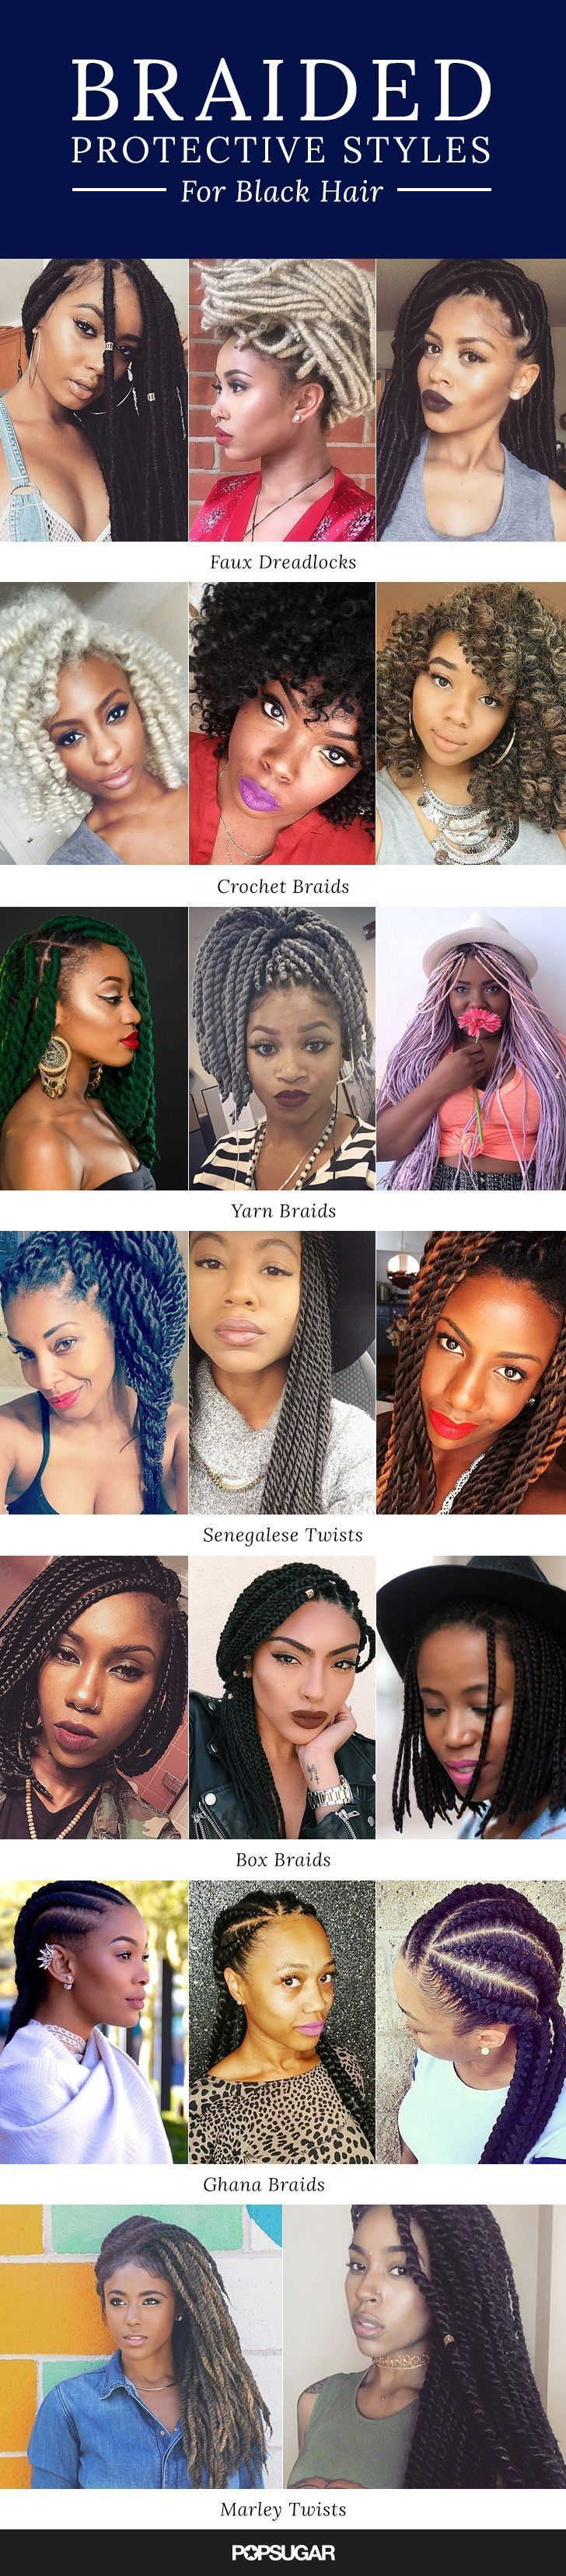 best style images on pinterest black beauty hairstyles and years